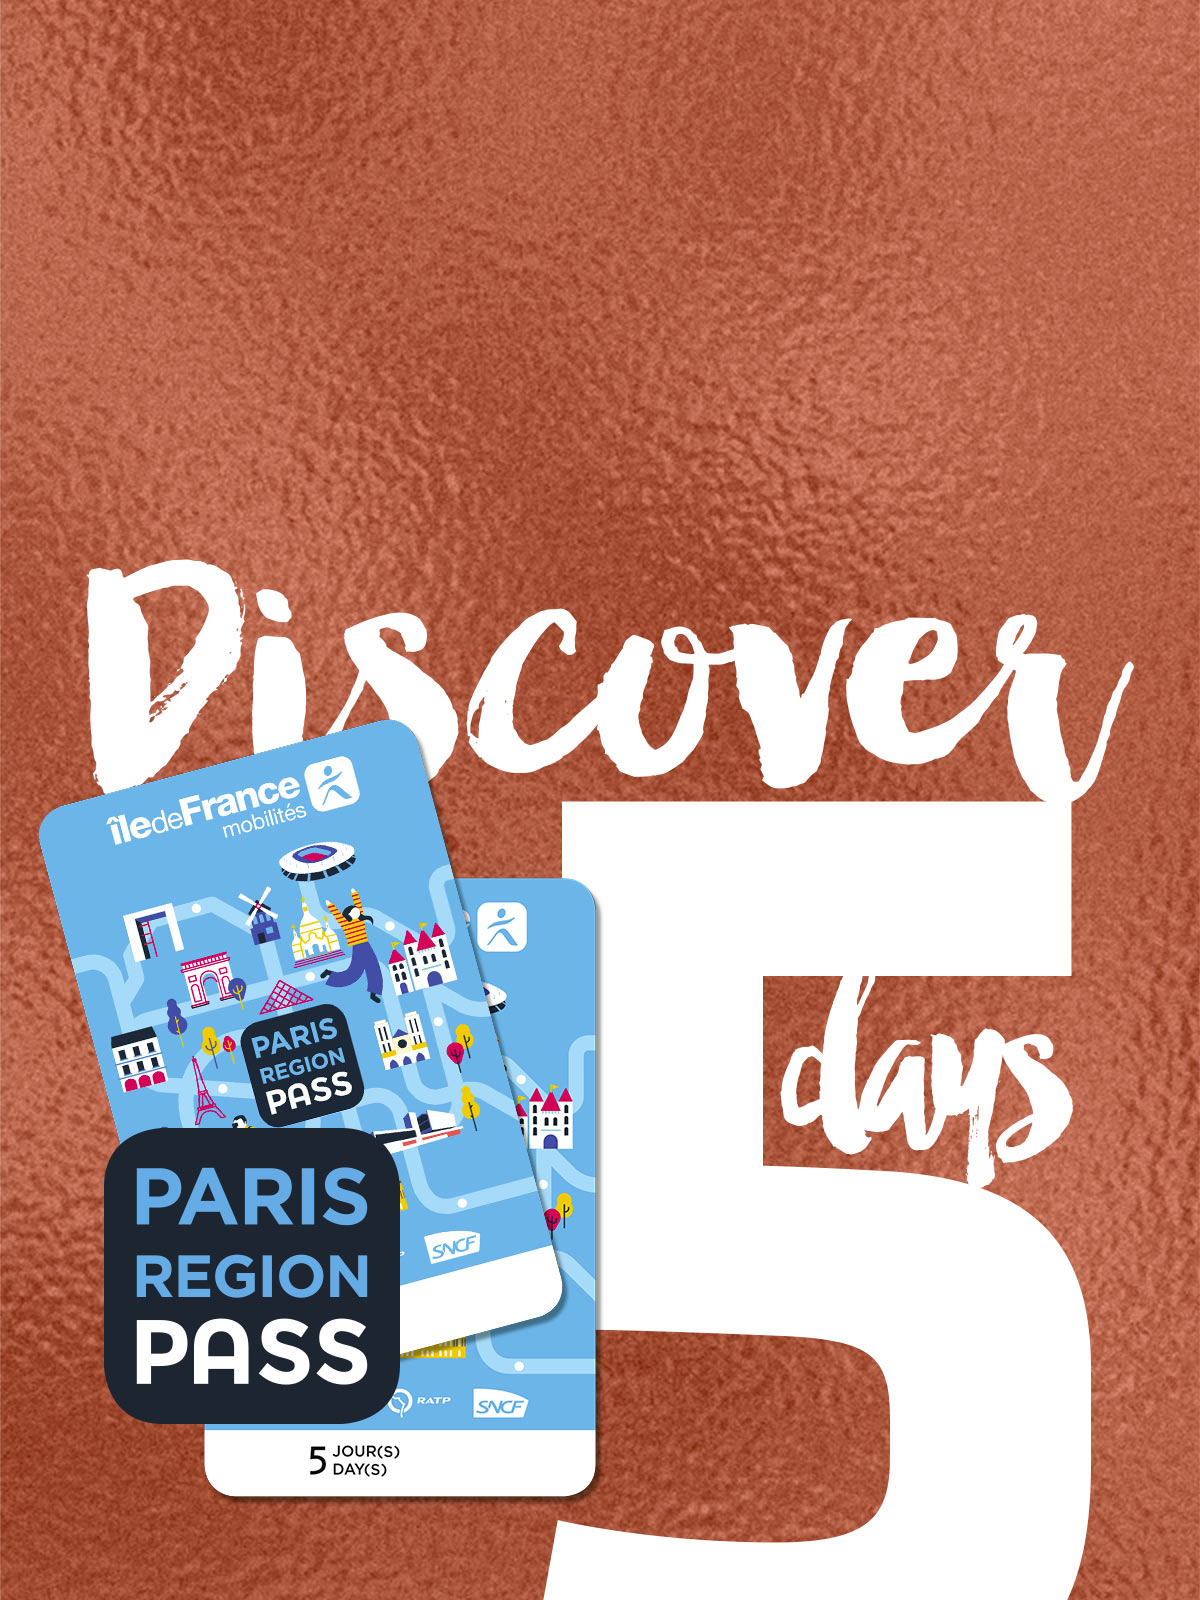 Paris Région Pass - discover - 5 days